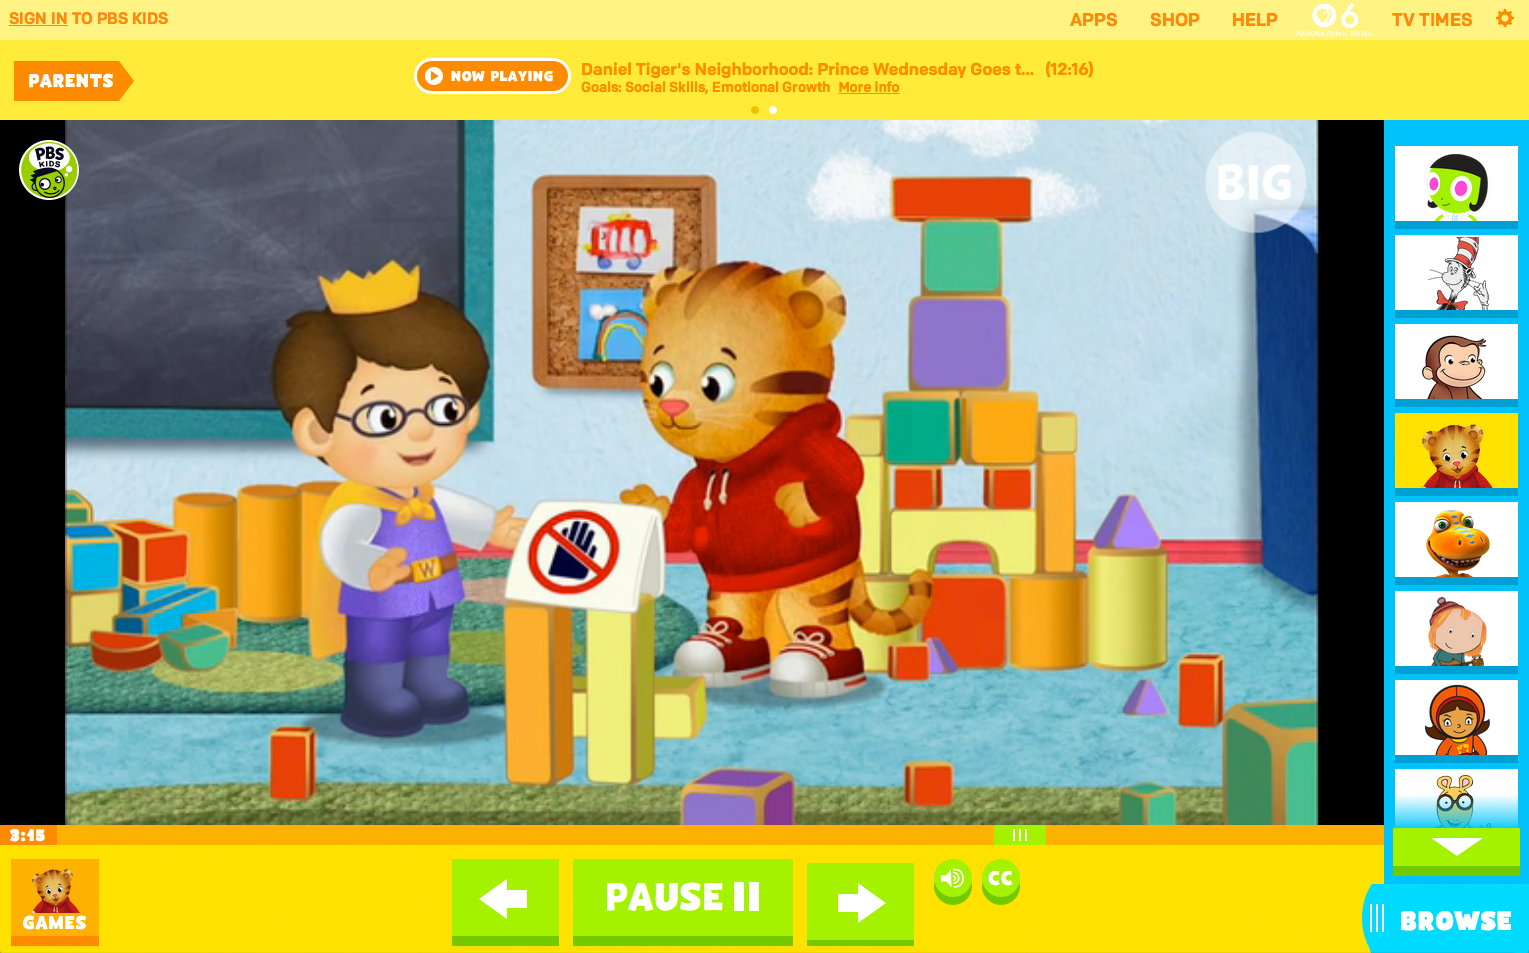 The Video Player On Redesigned PBS Kids Web Site